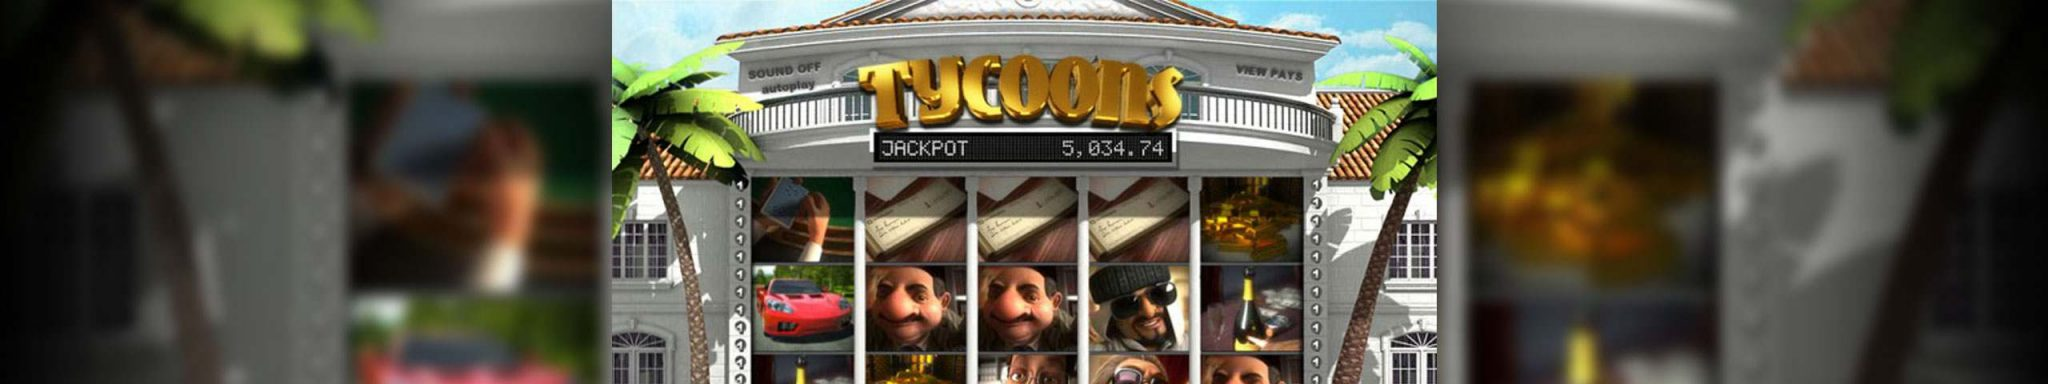 Tycoons Plus Betsoft spilleautomater slider